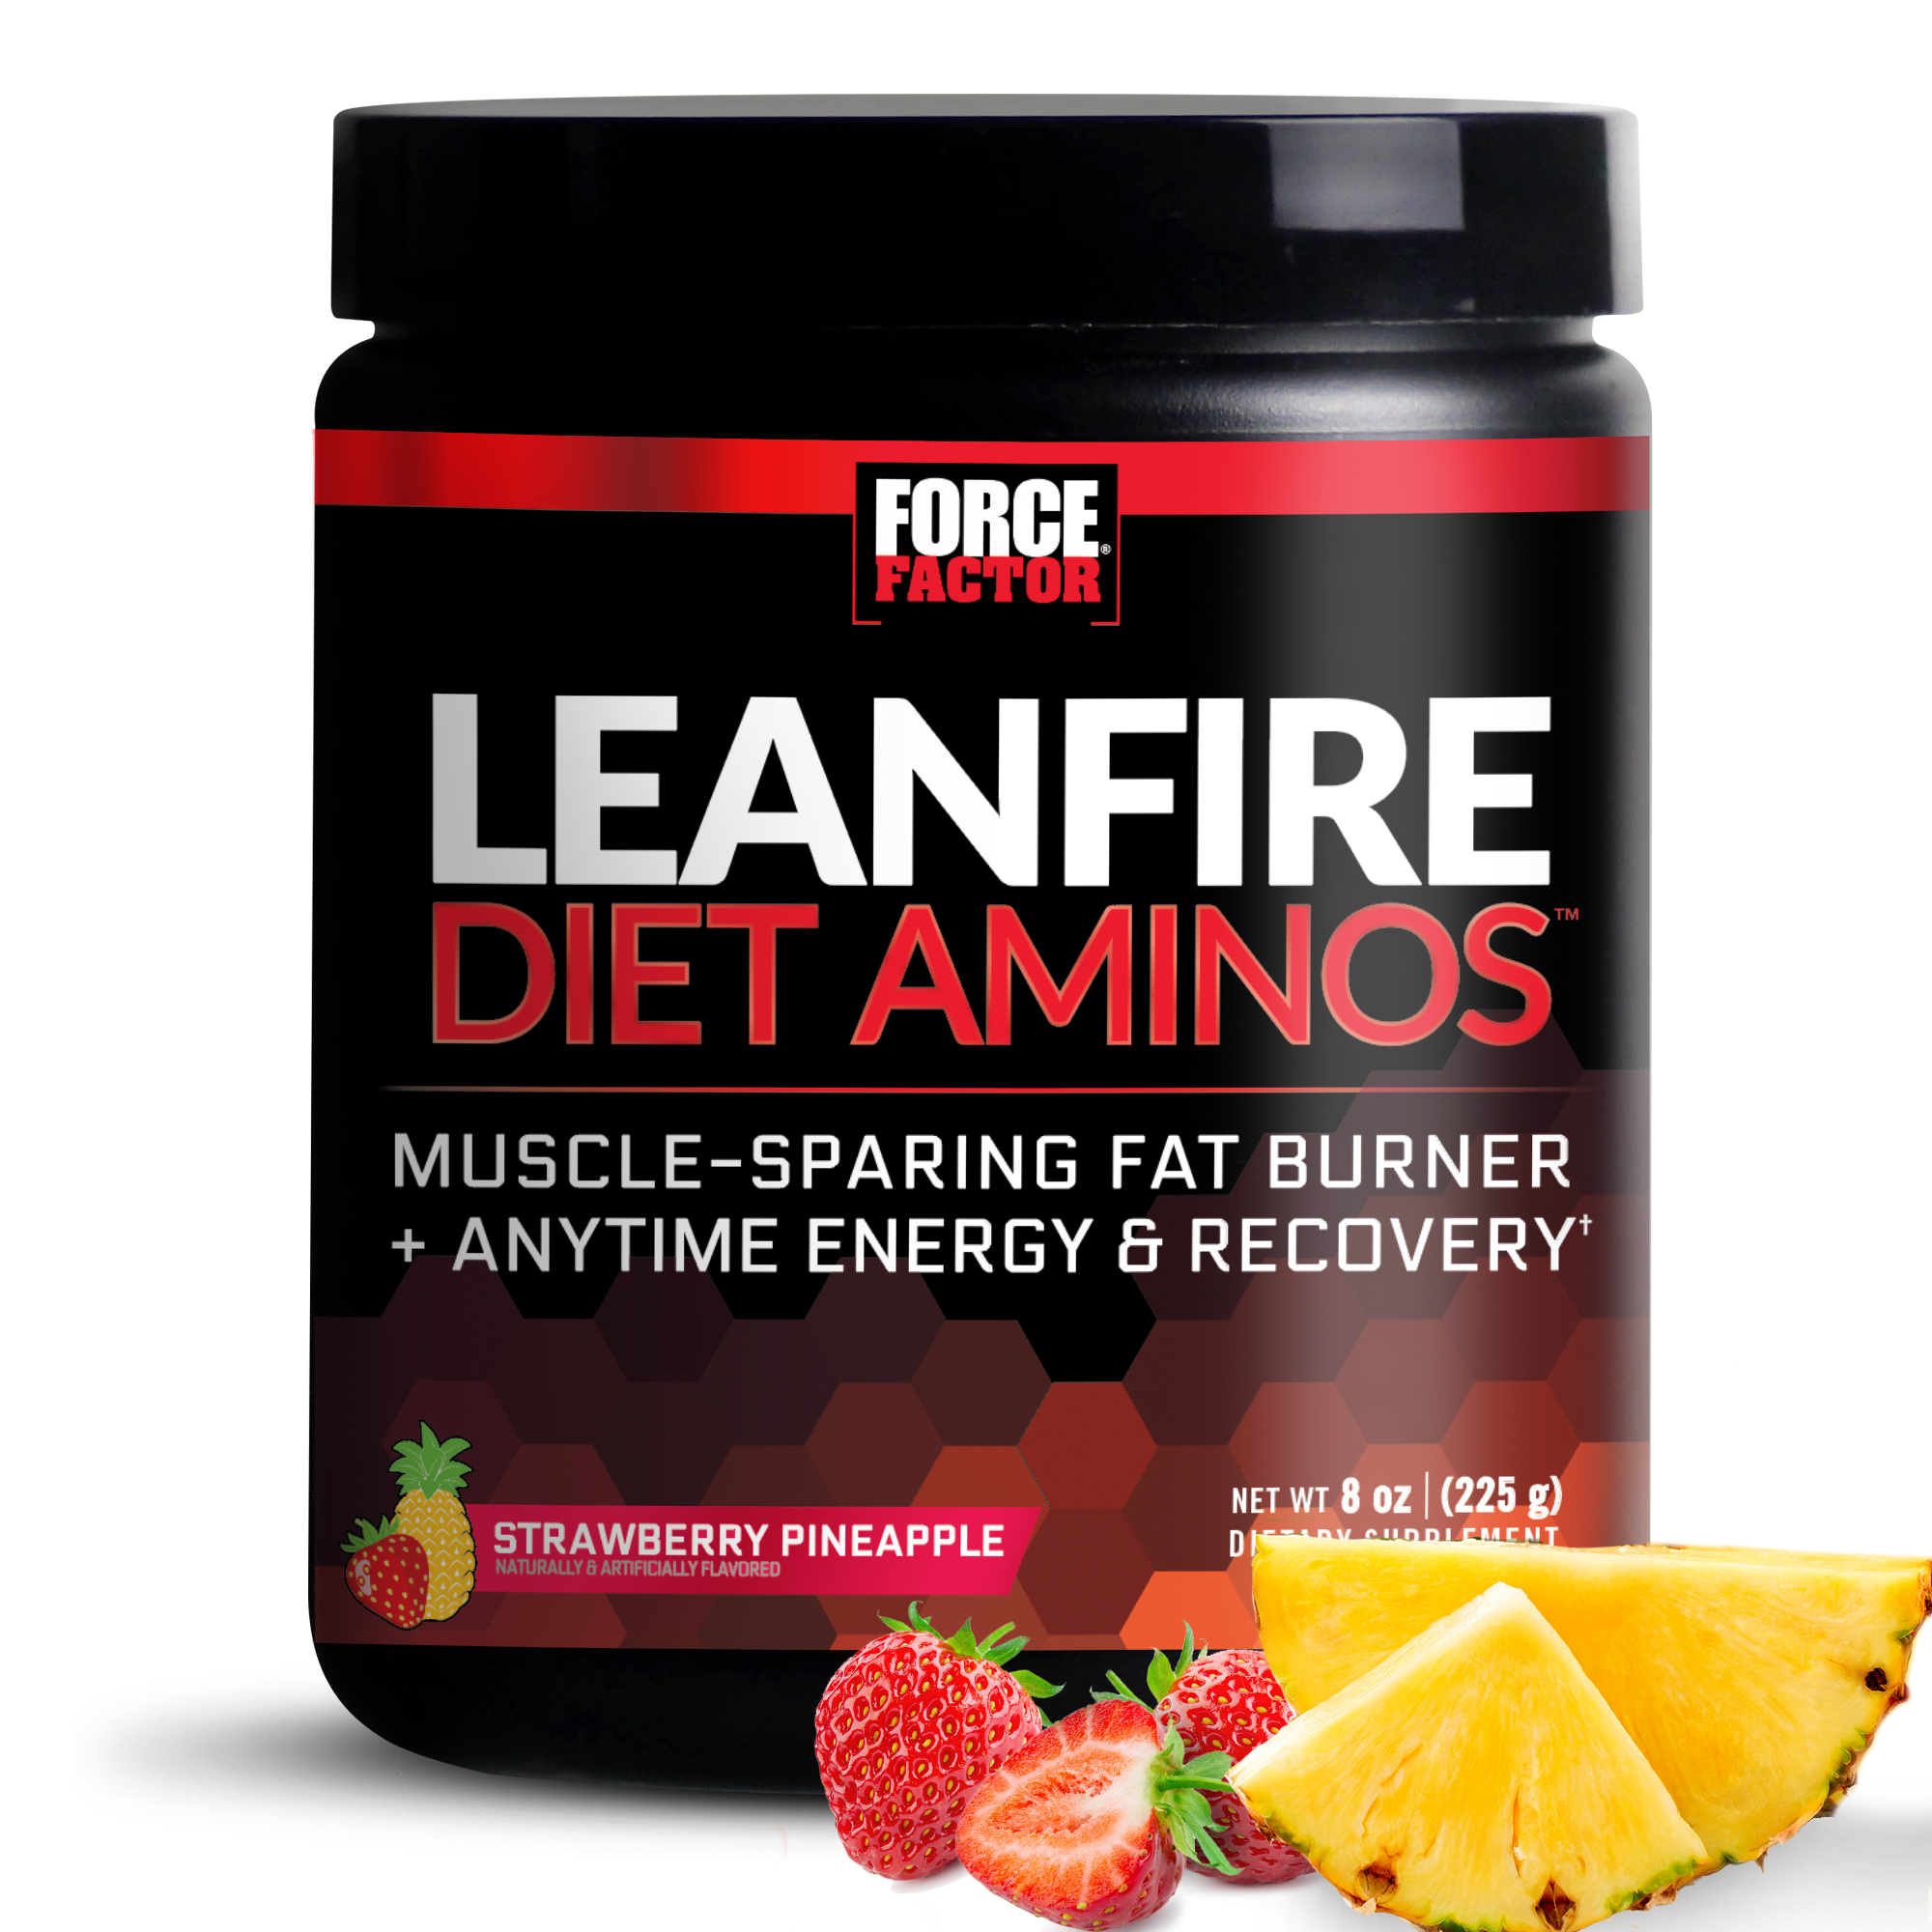 Force Factor LeanFire Diet Aminos Powder, Strawberry Pineapple, 45 Servings